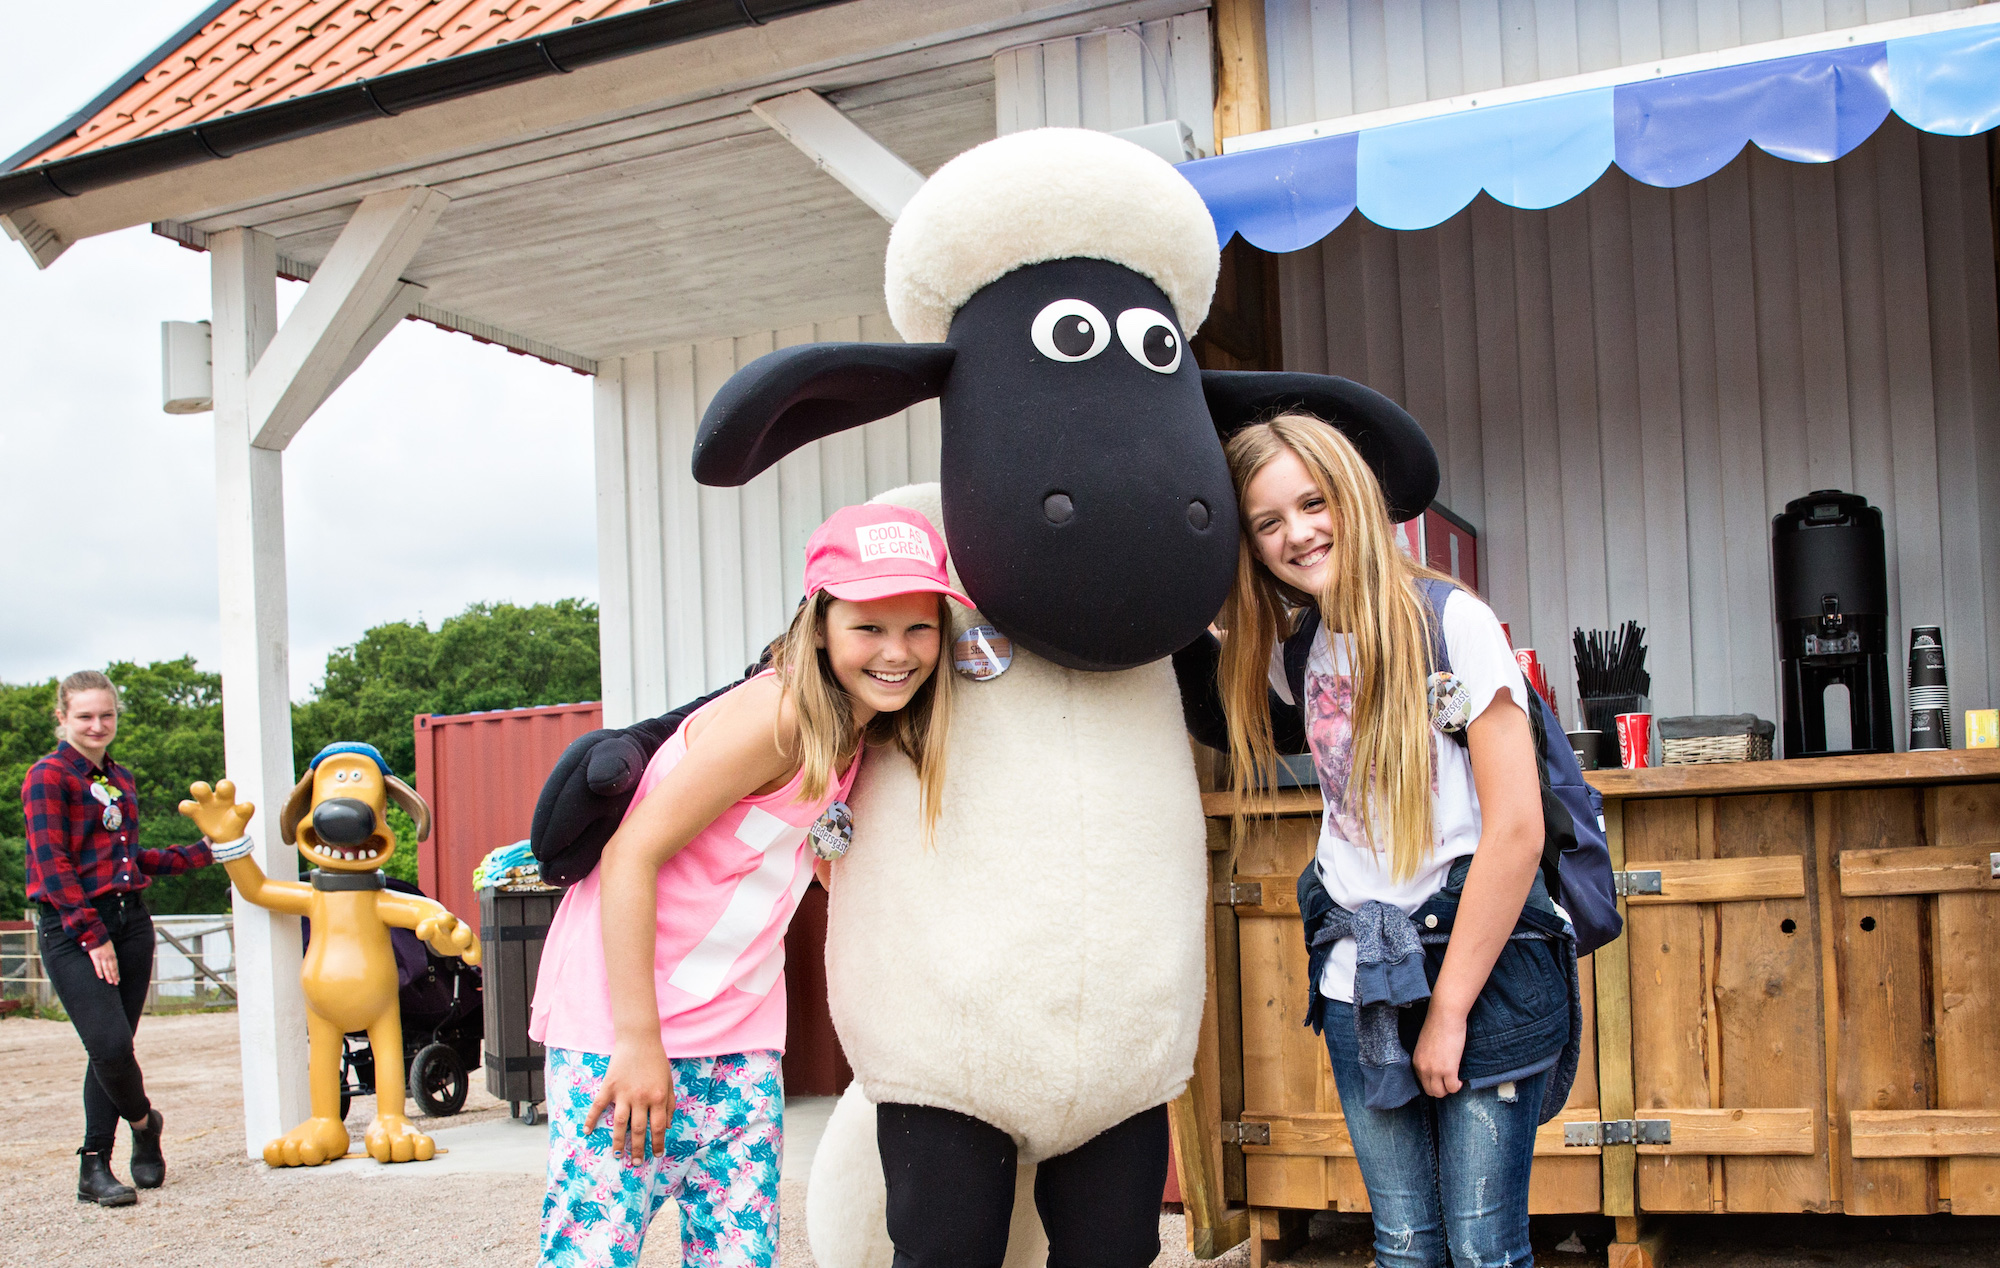 shaun the sheep from aardman at skanes djurpark theme park